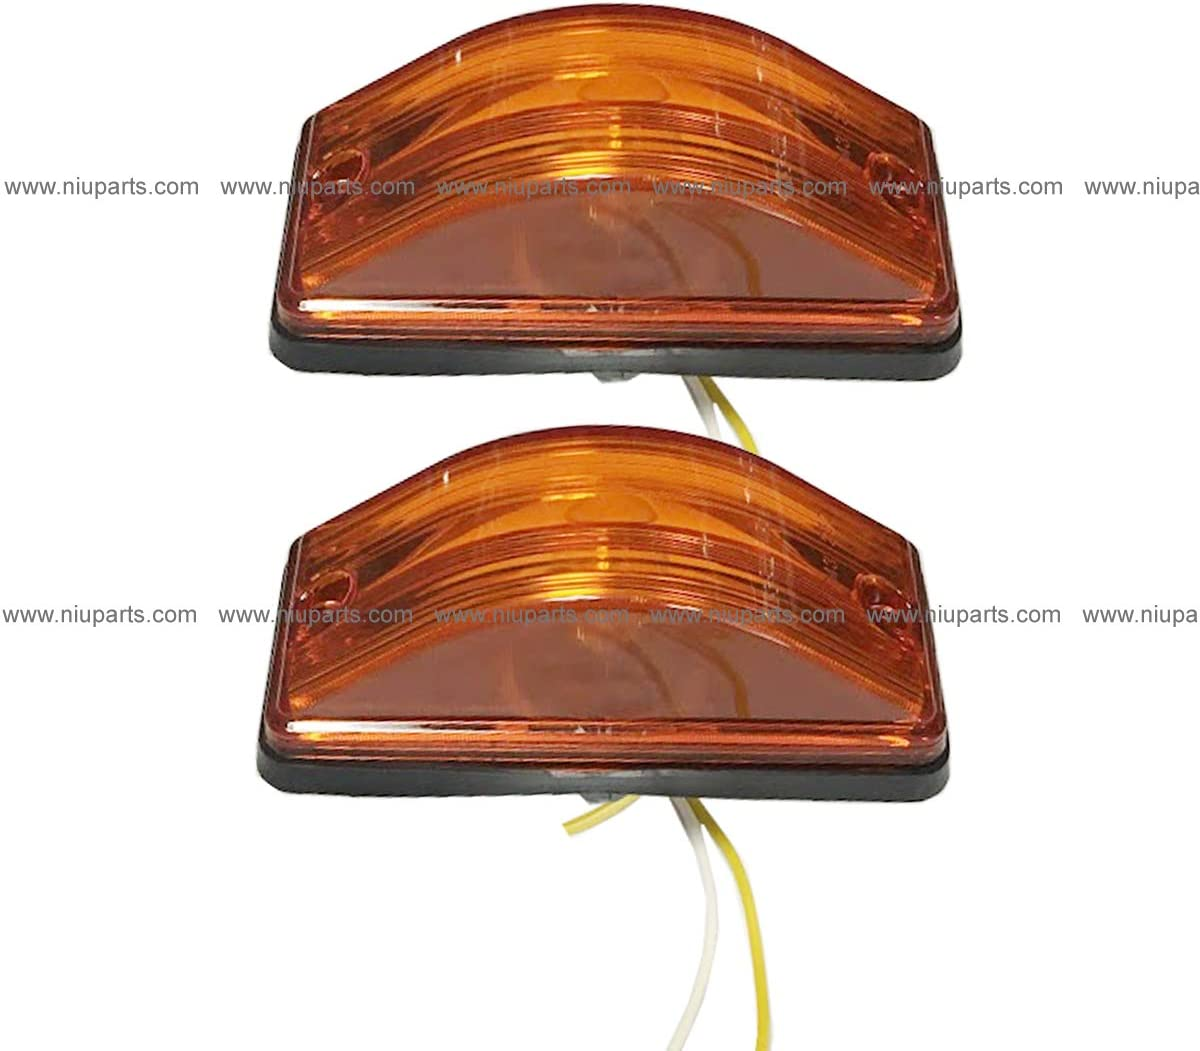 2 pcs of Behind Fender Cab 国内送料無料 Marker with アイテム勢ぞろい Light Turn Signal Rubber